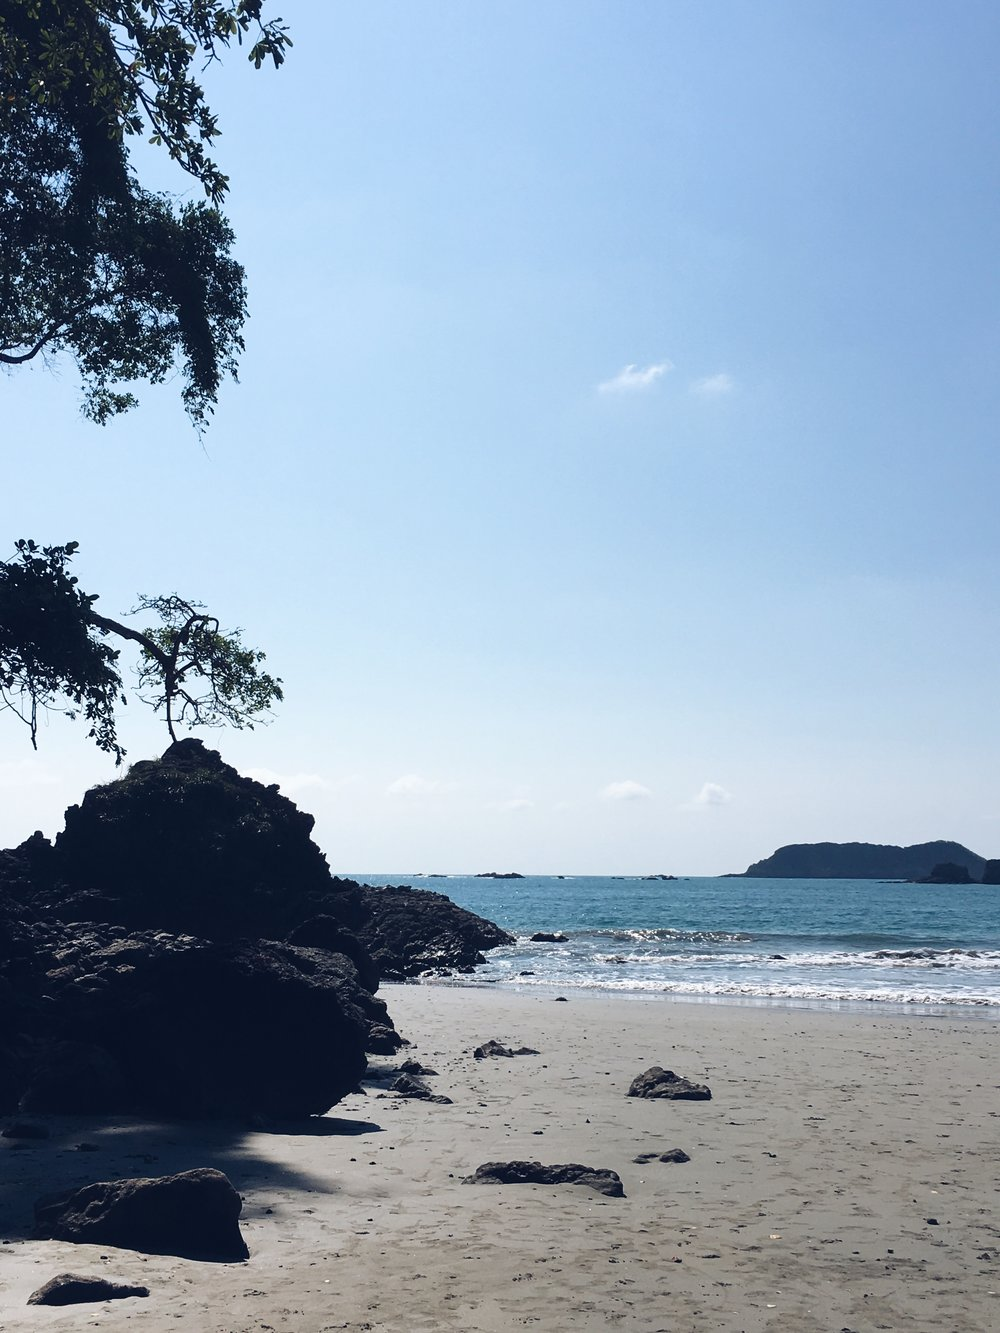 Manuel Antonio National Park is paradise.